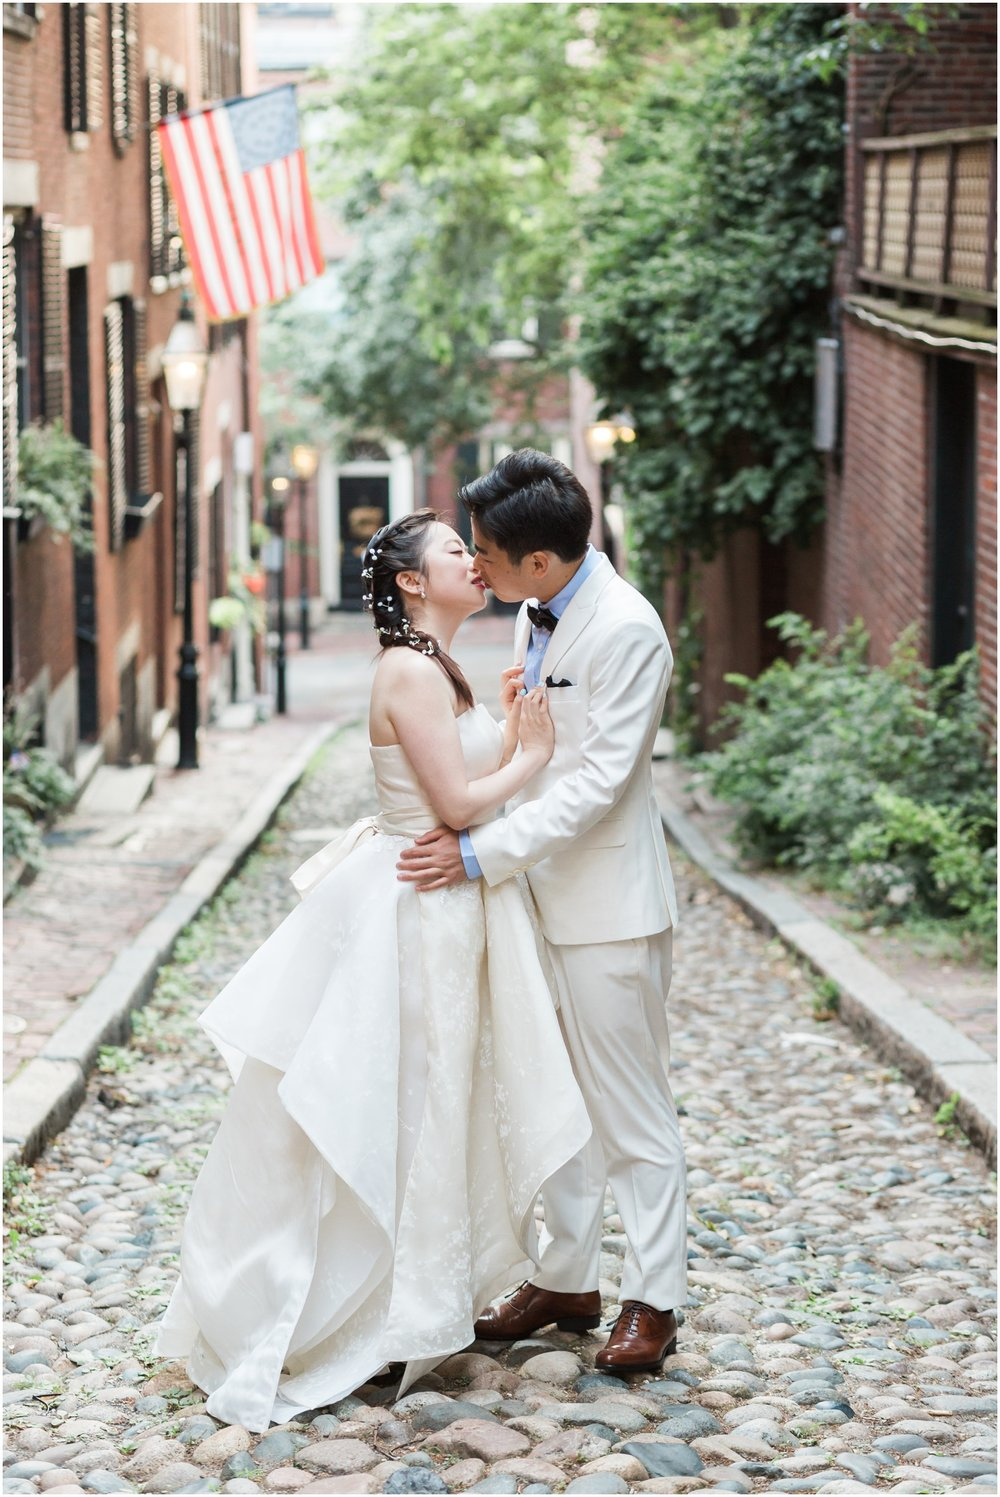 Acorn Street Engagement Session // Boston Engagement Photographer